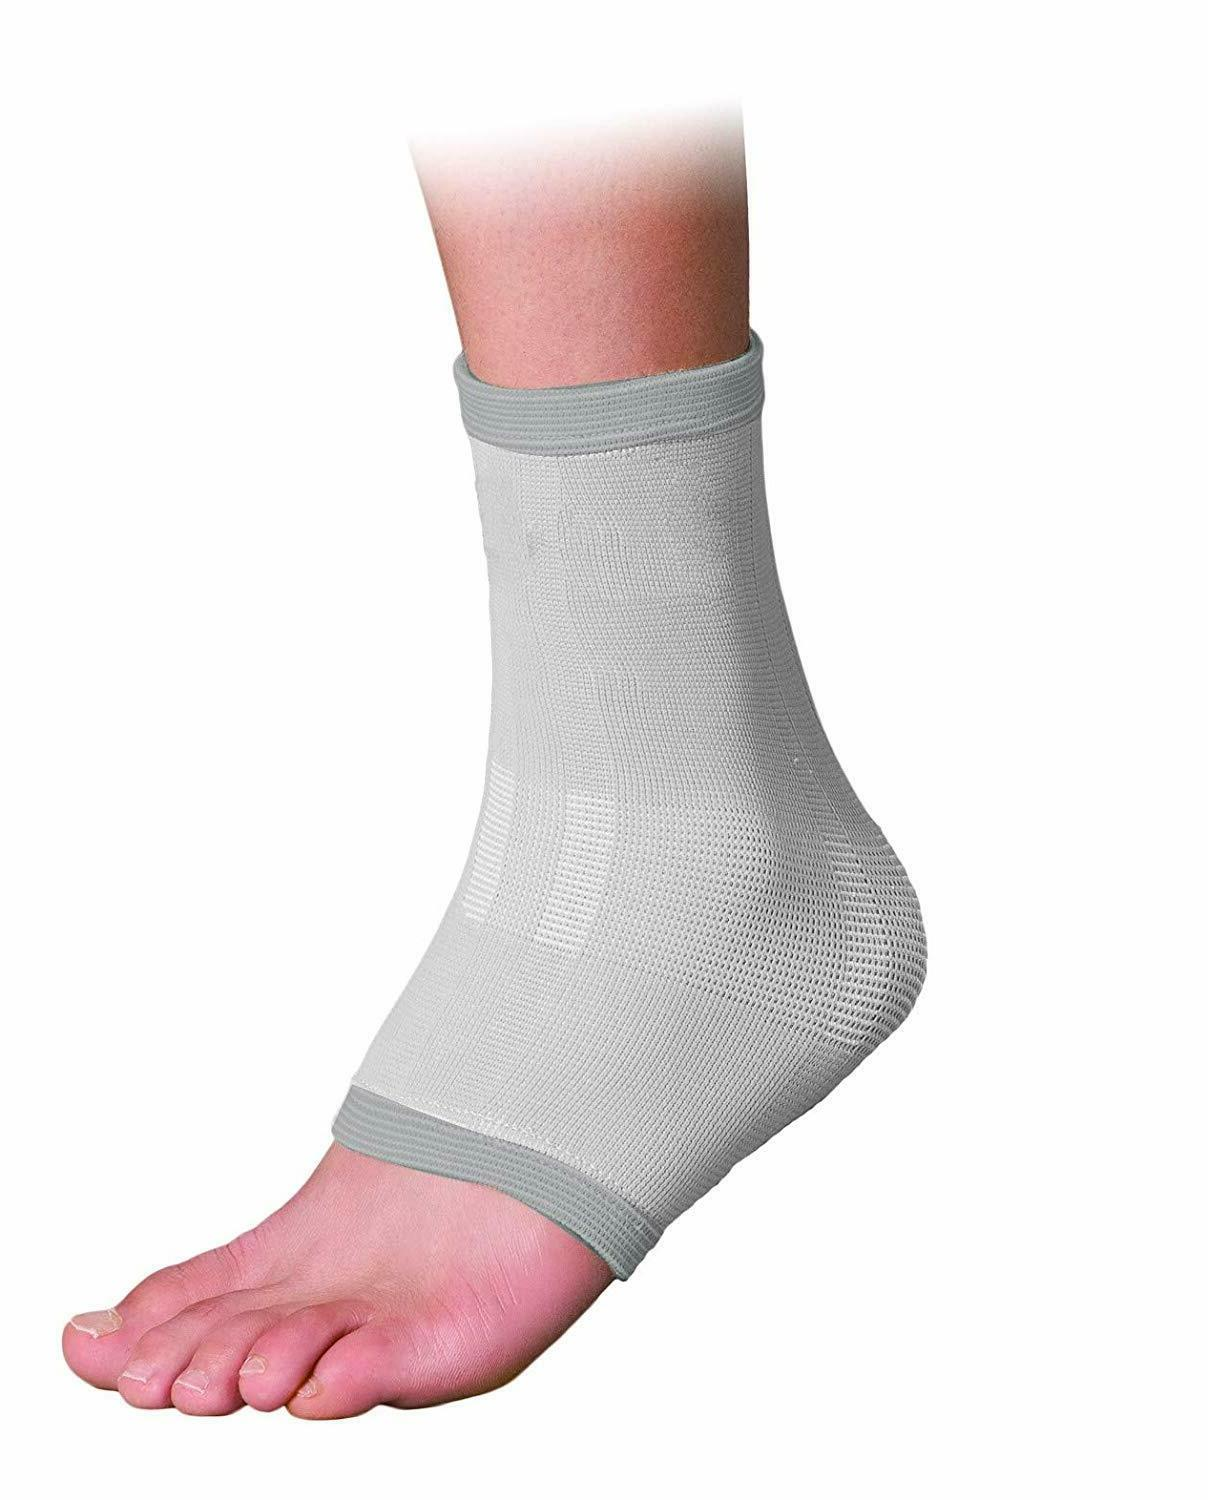 ankle brace compression support sleeve for injury